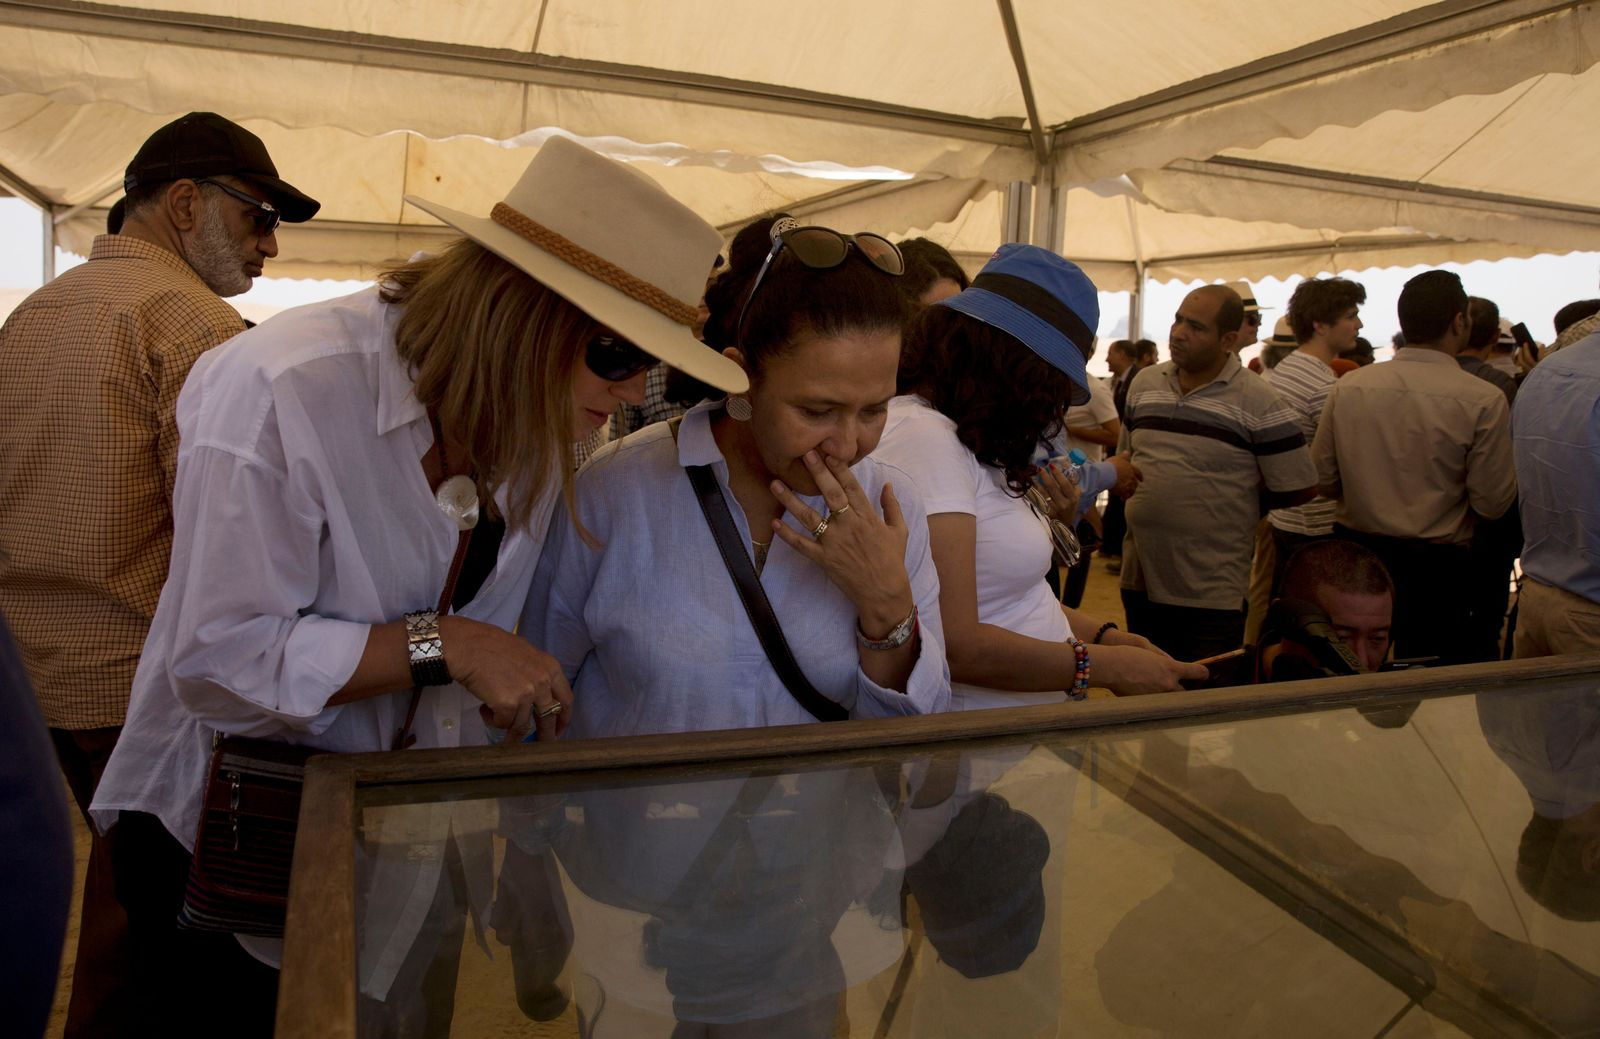 Women look at recently discovered artifacts at the Bent Pyramid during an event opening the pyramid and its satellites for visitors in Dashur, Egypt, Saturday, July 13, 2019. (AP Photo/Maya Alleruzzo)